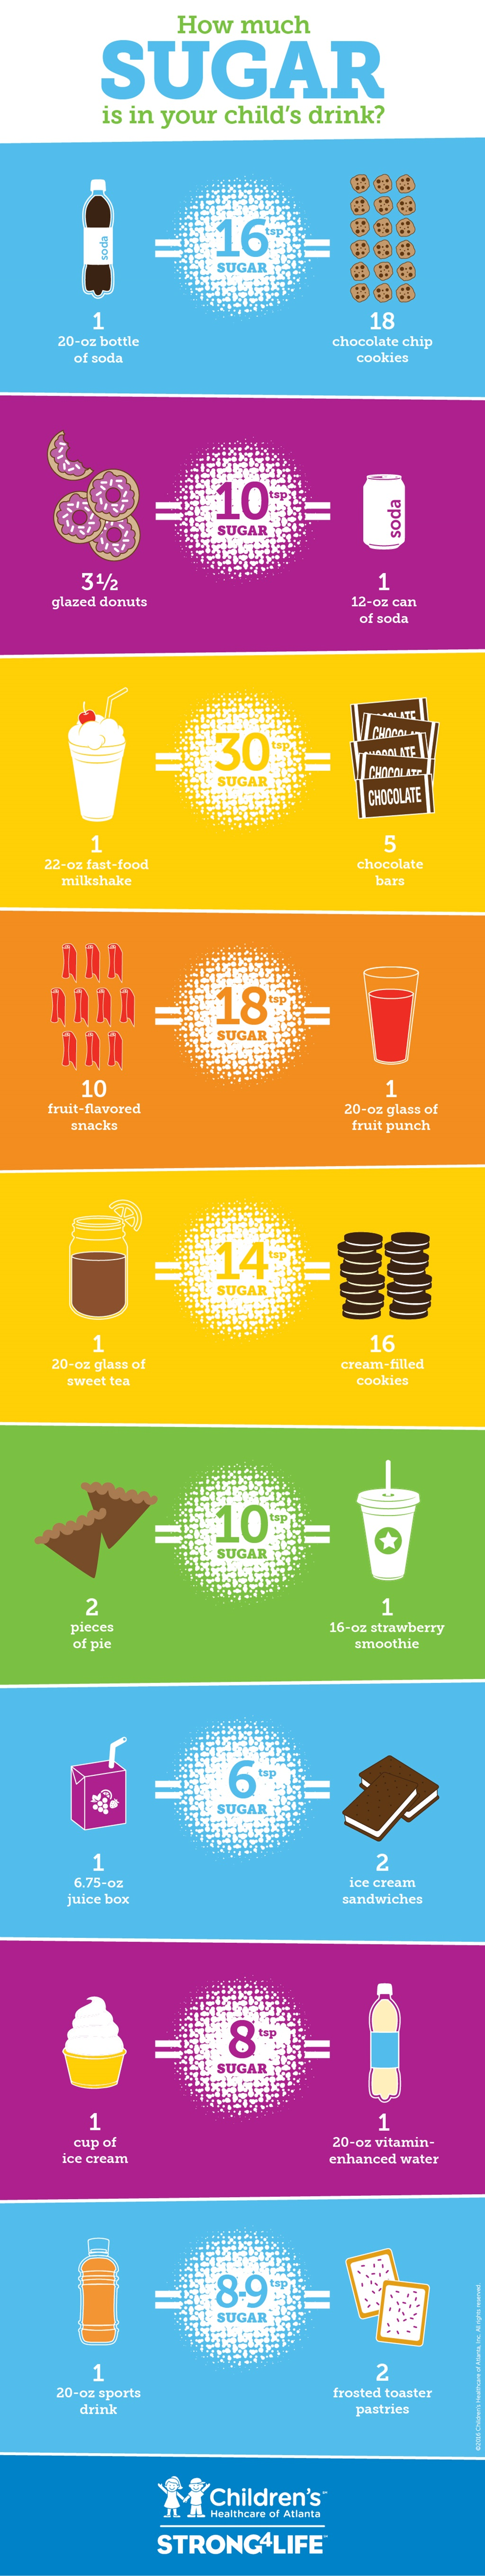 How Much Sugar is in Your Child's Beverage?